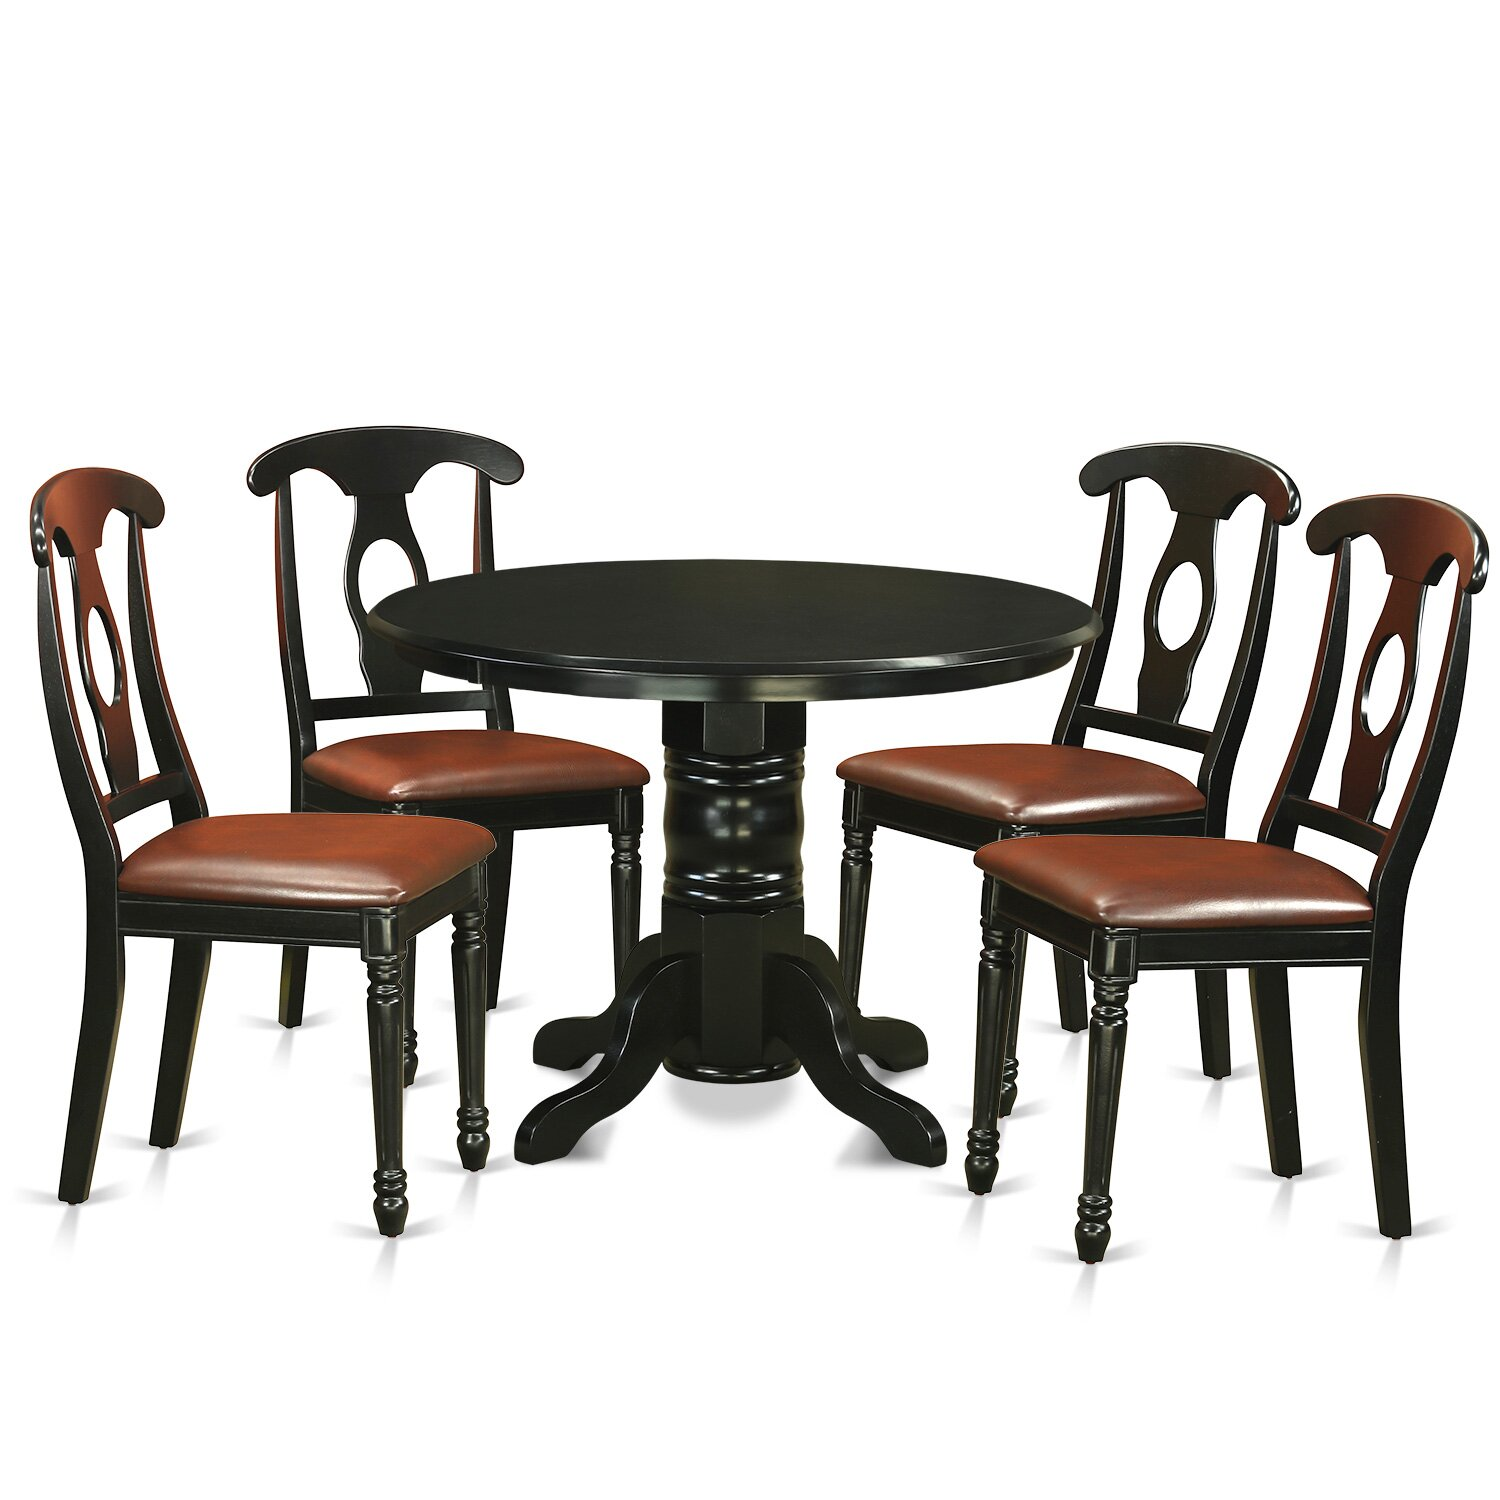 East west shelton 5 piece dining set reviews wayfair for 4 chair kitchen table set